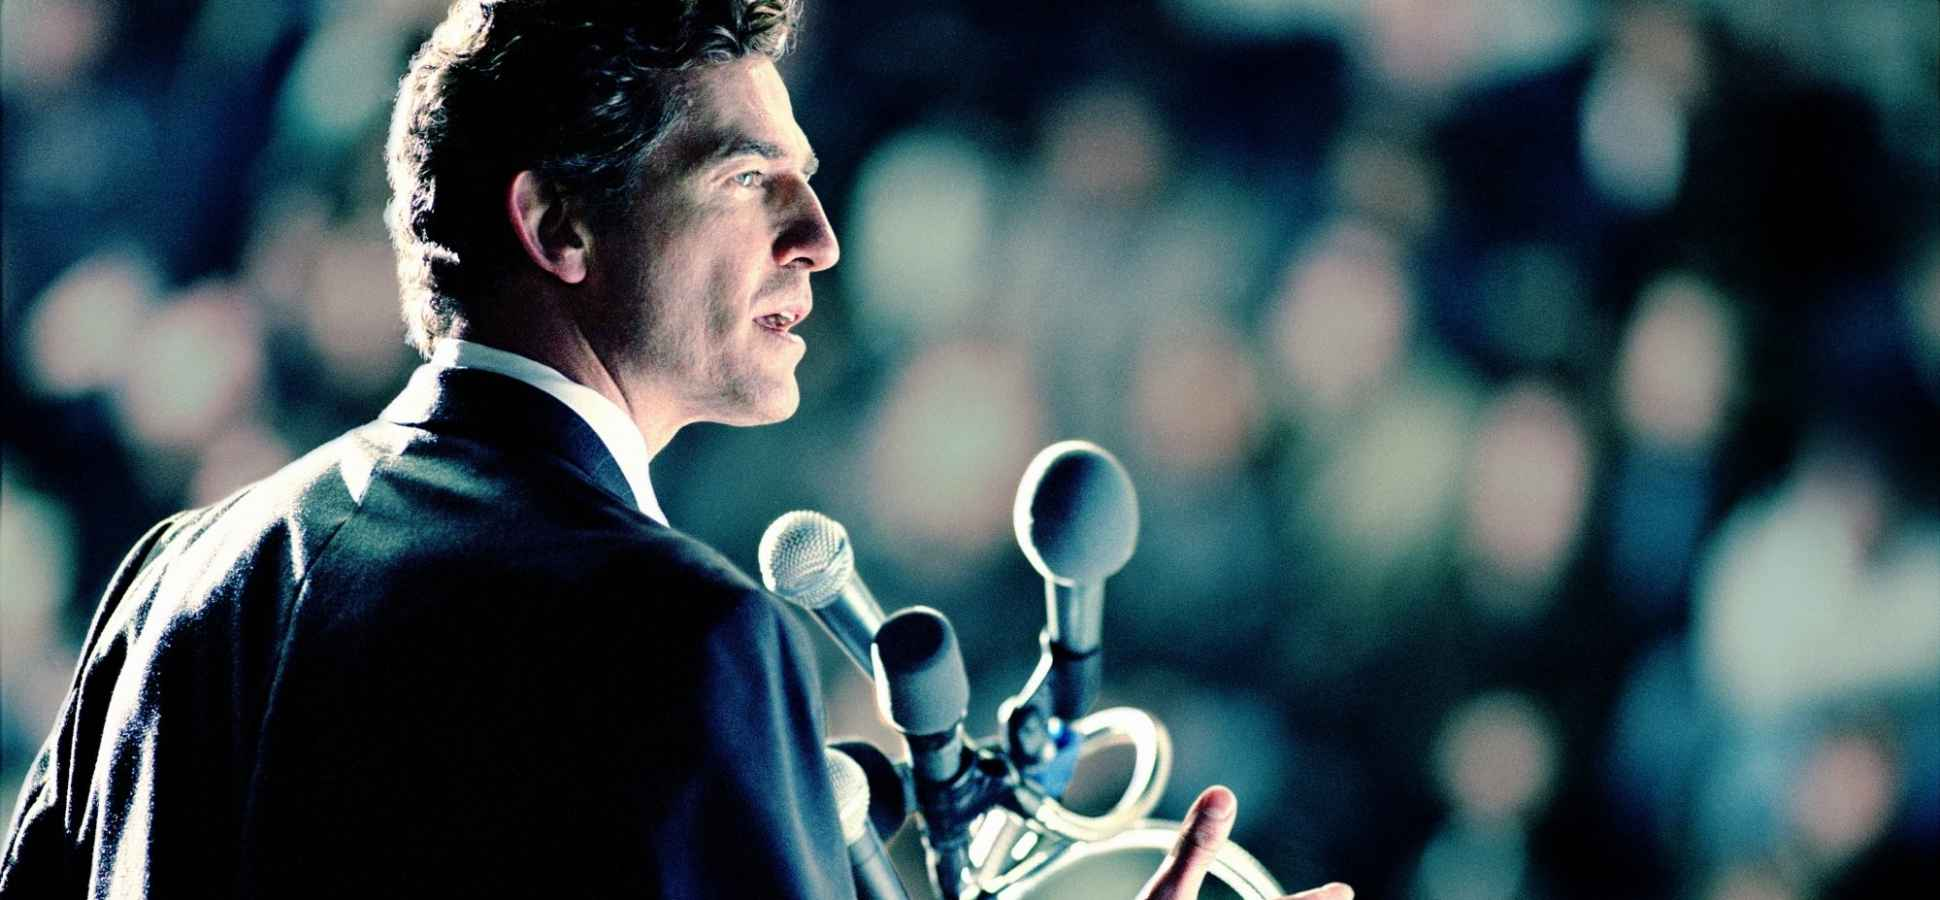 5 Steps to Take to Overcome Public Speaking Anxiety